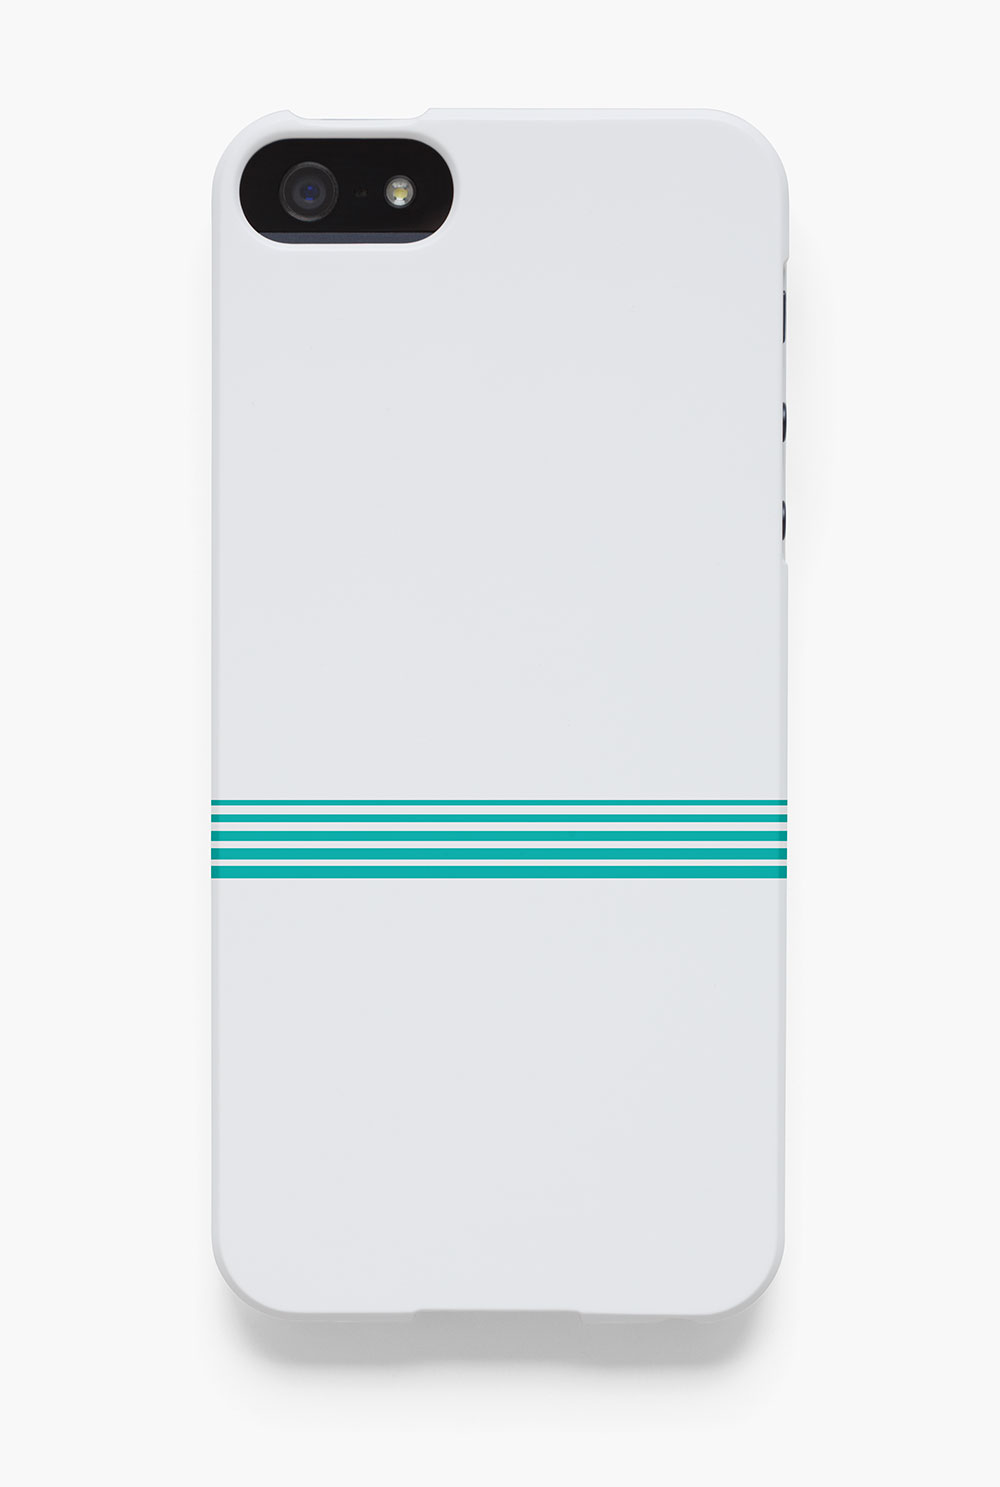 Tunelinks logo on phone cover